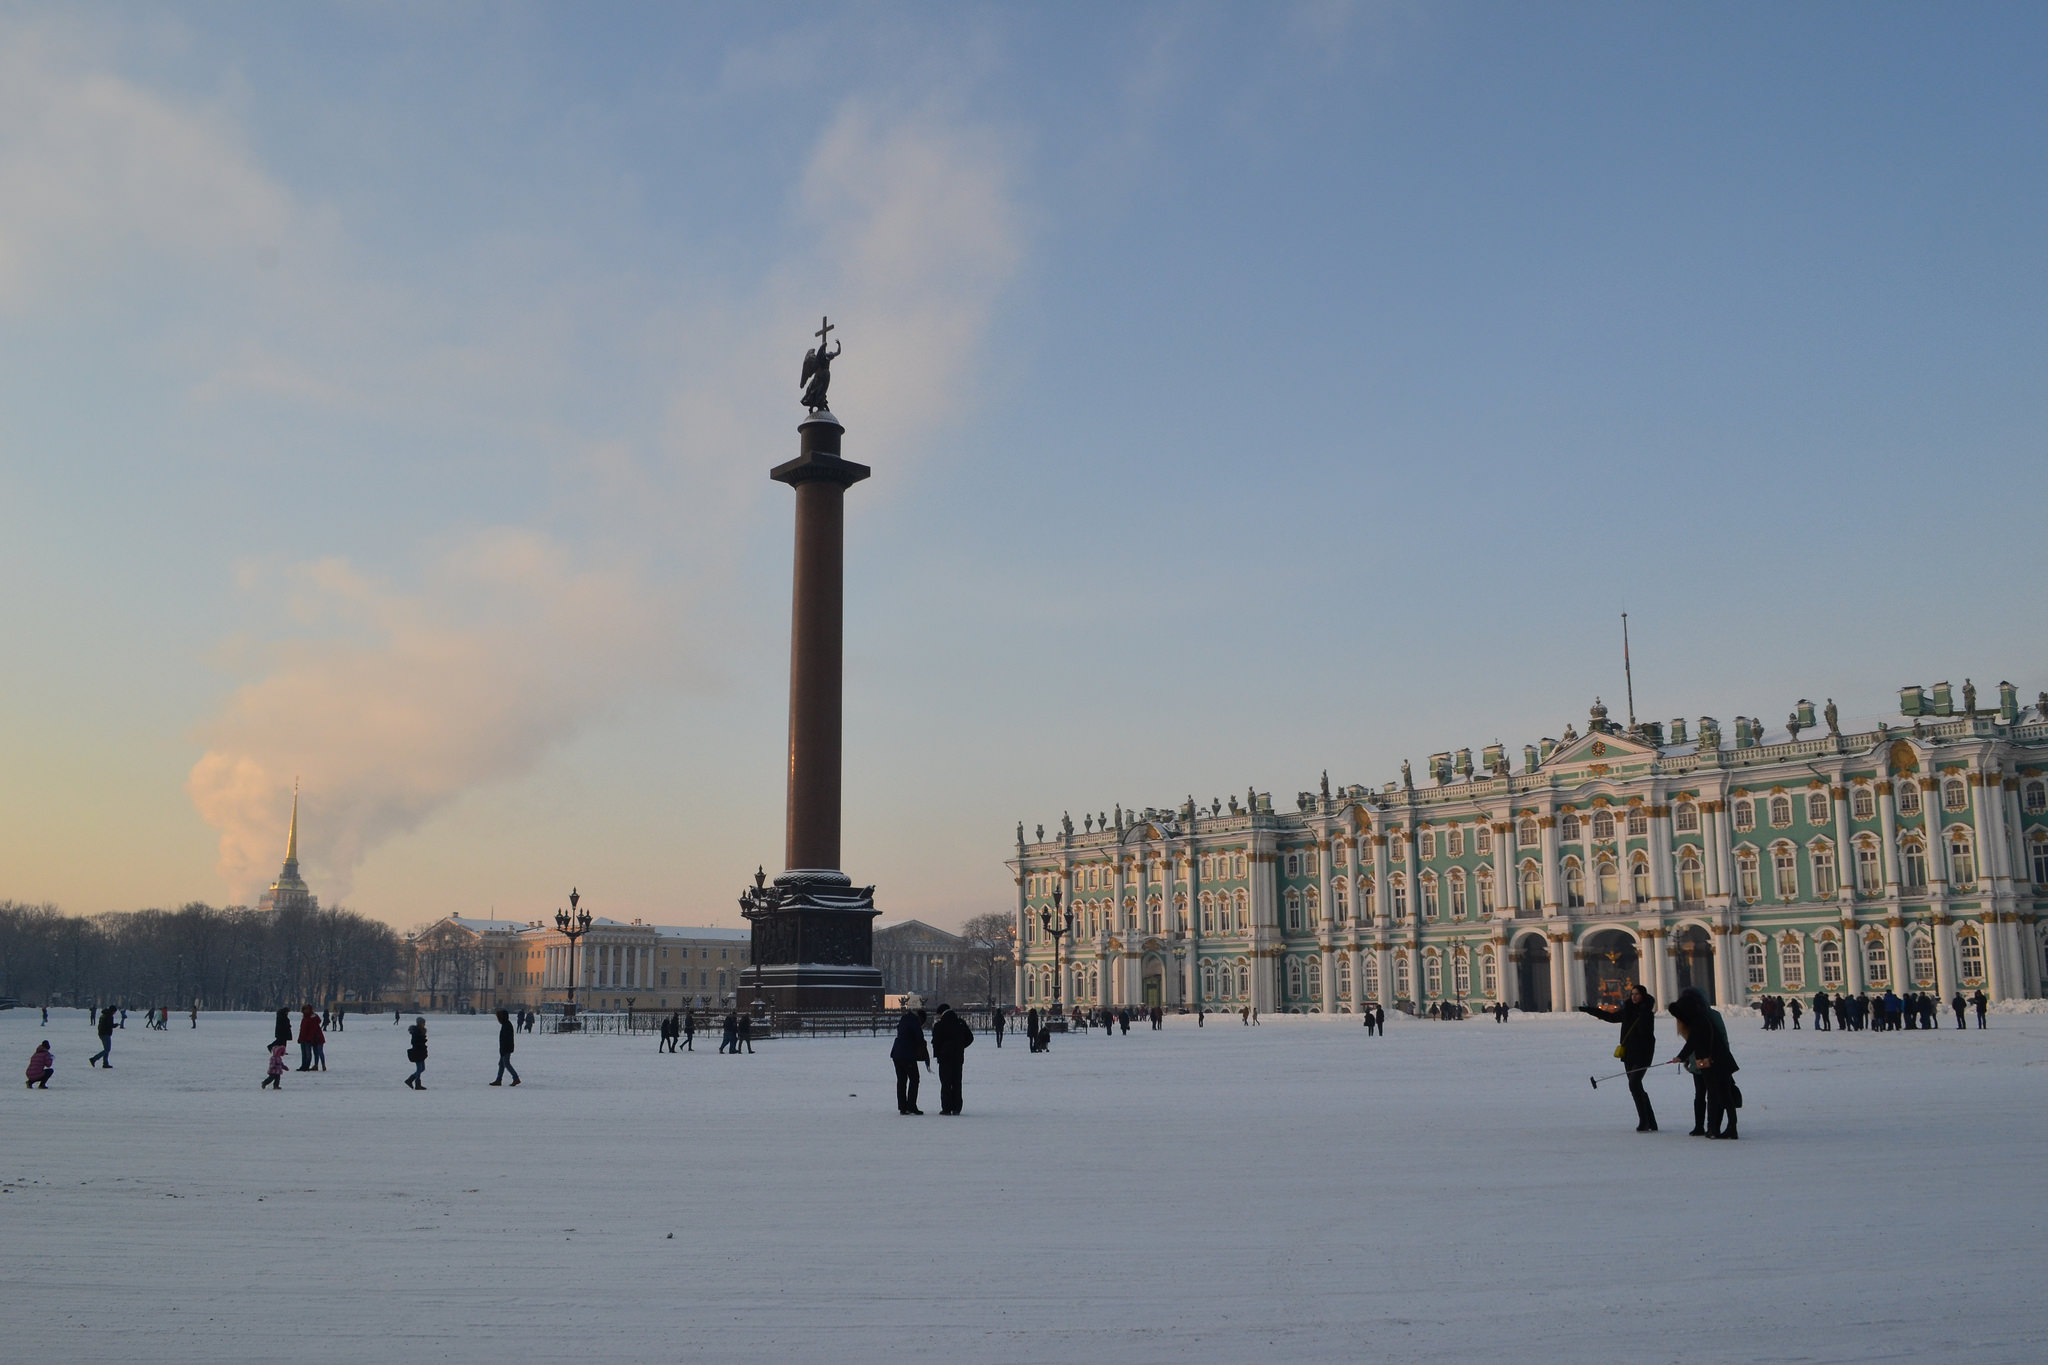 The perfection of St. Petersburg